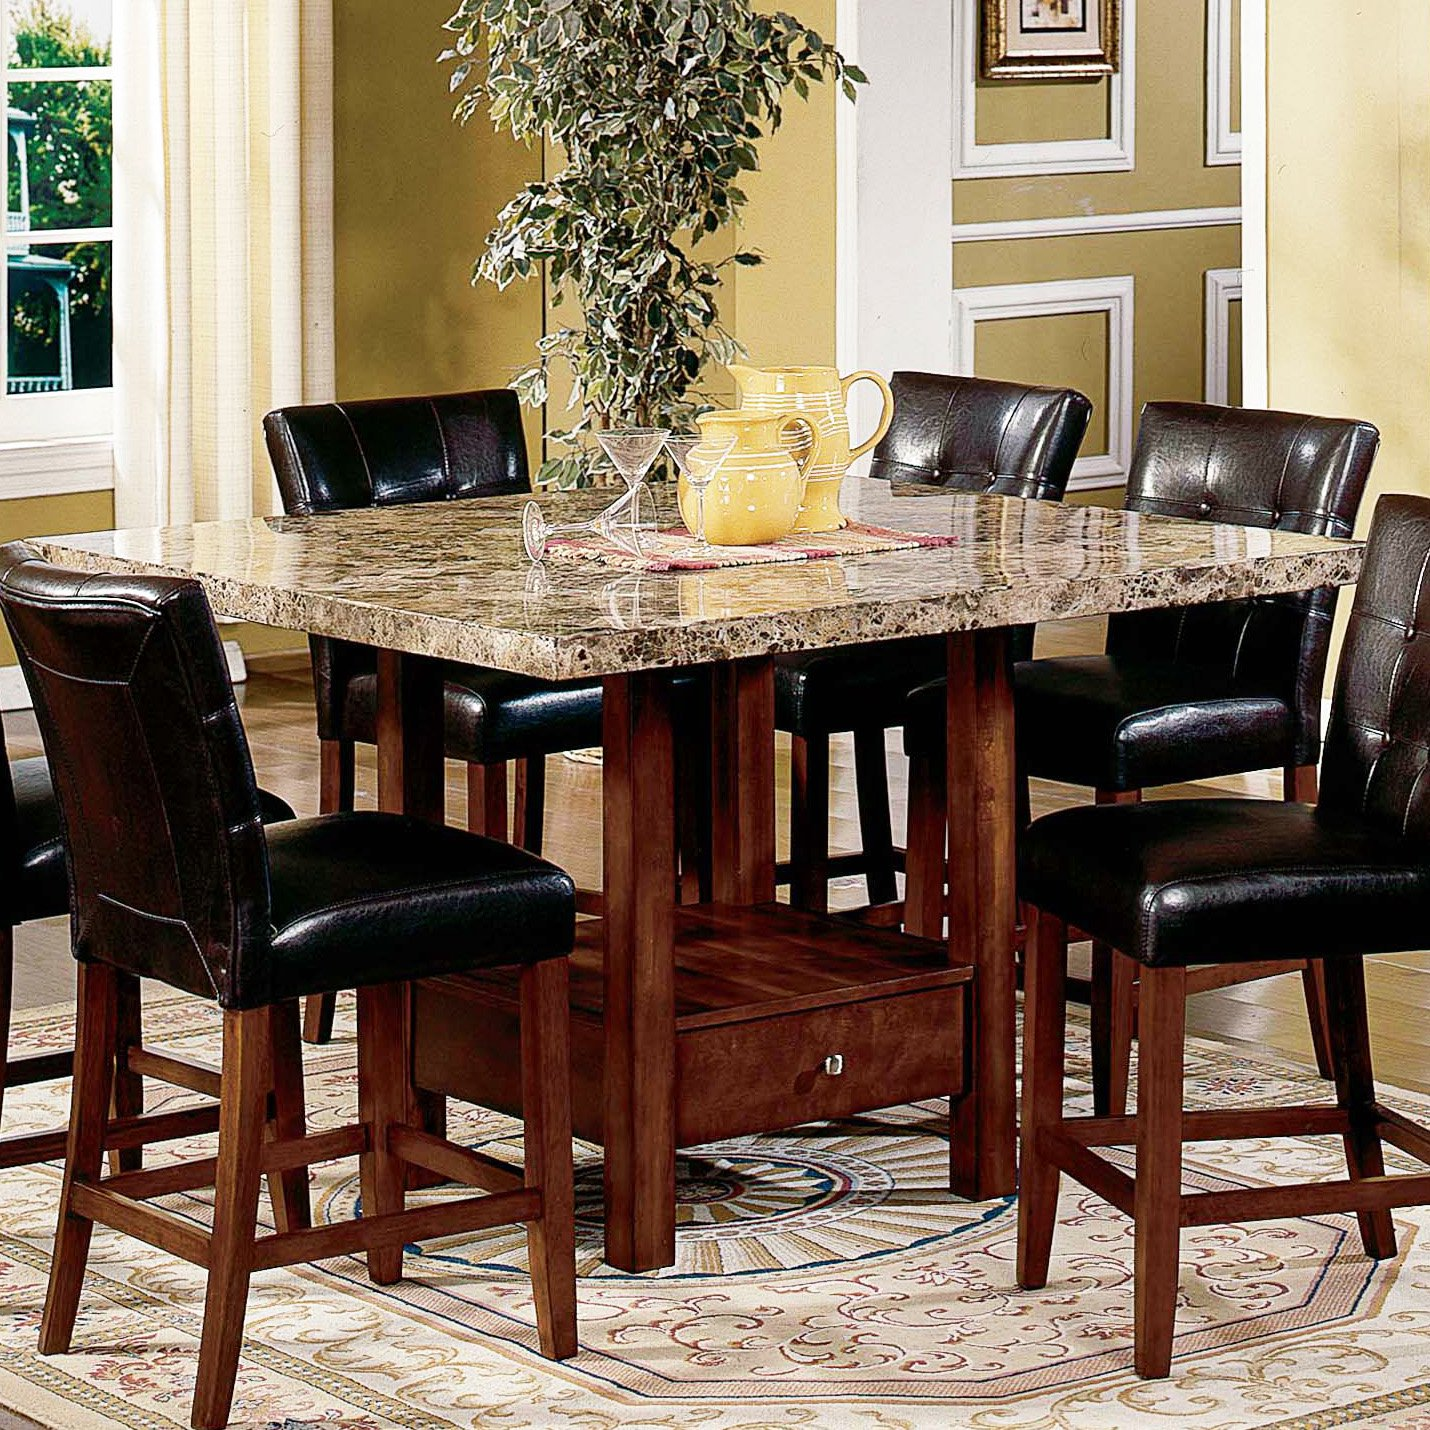 High top kitchen table sets homesfeed for Kitchen table sets with bench